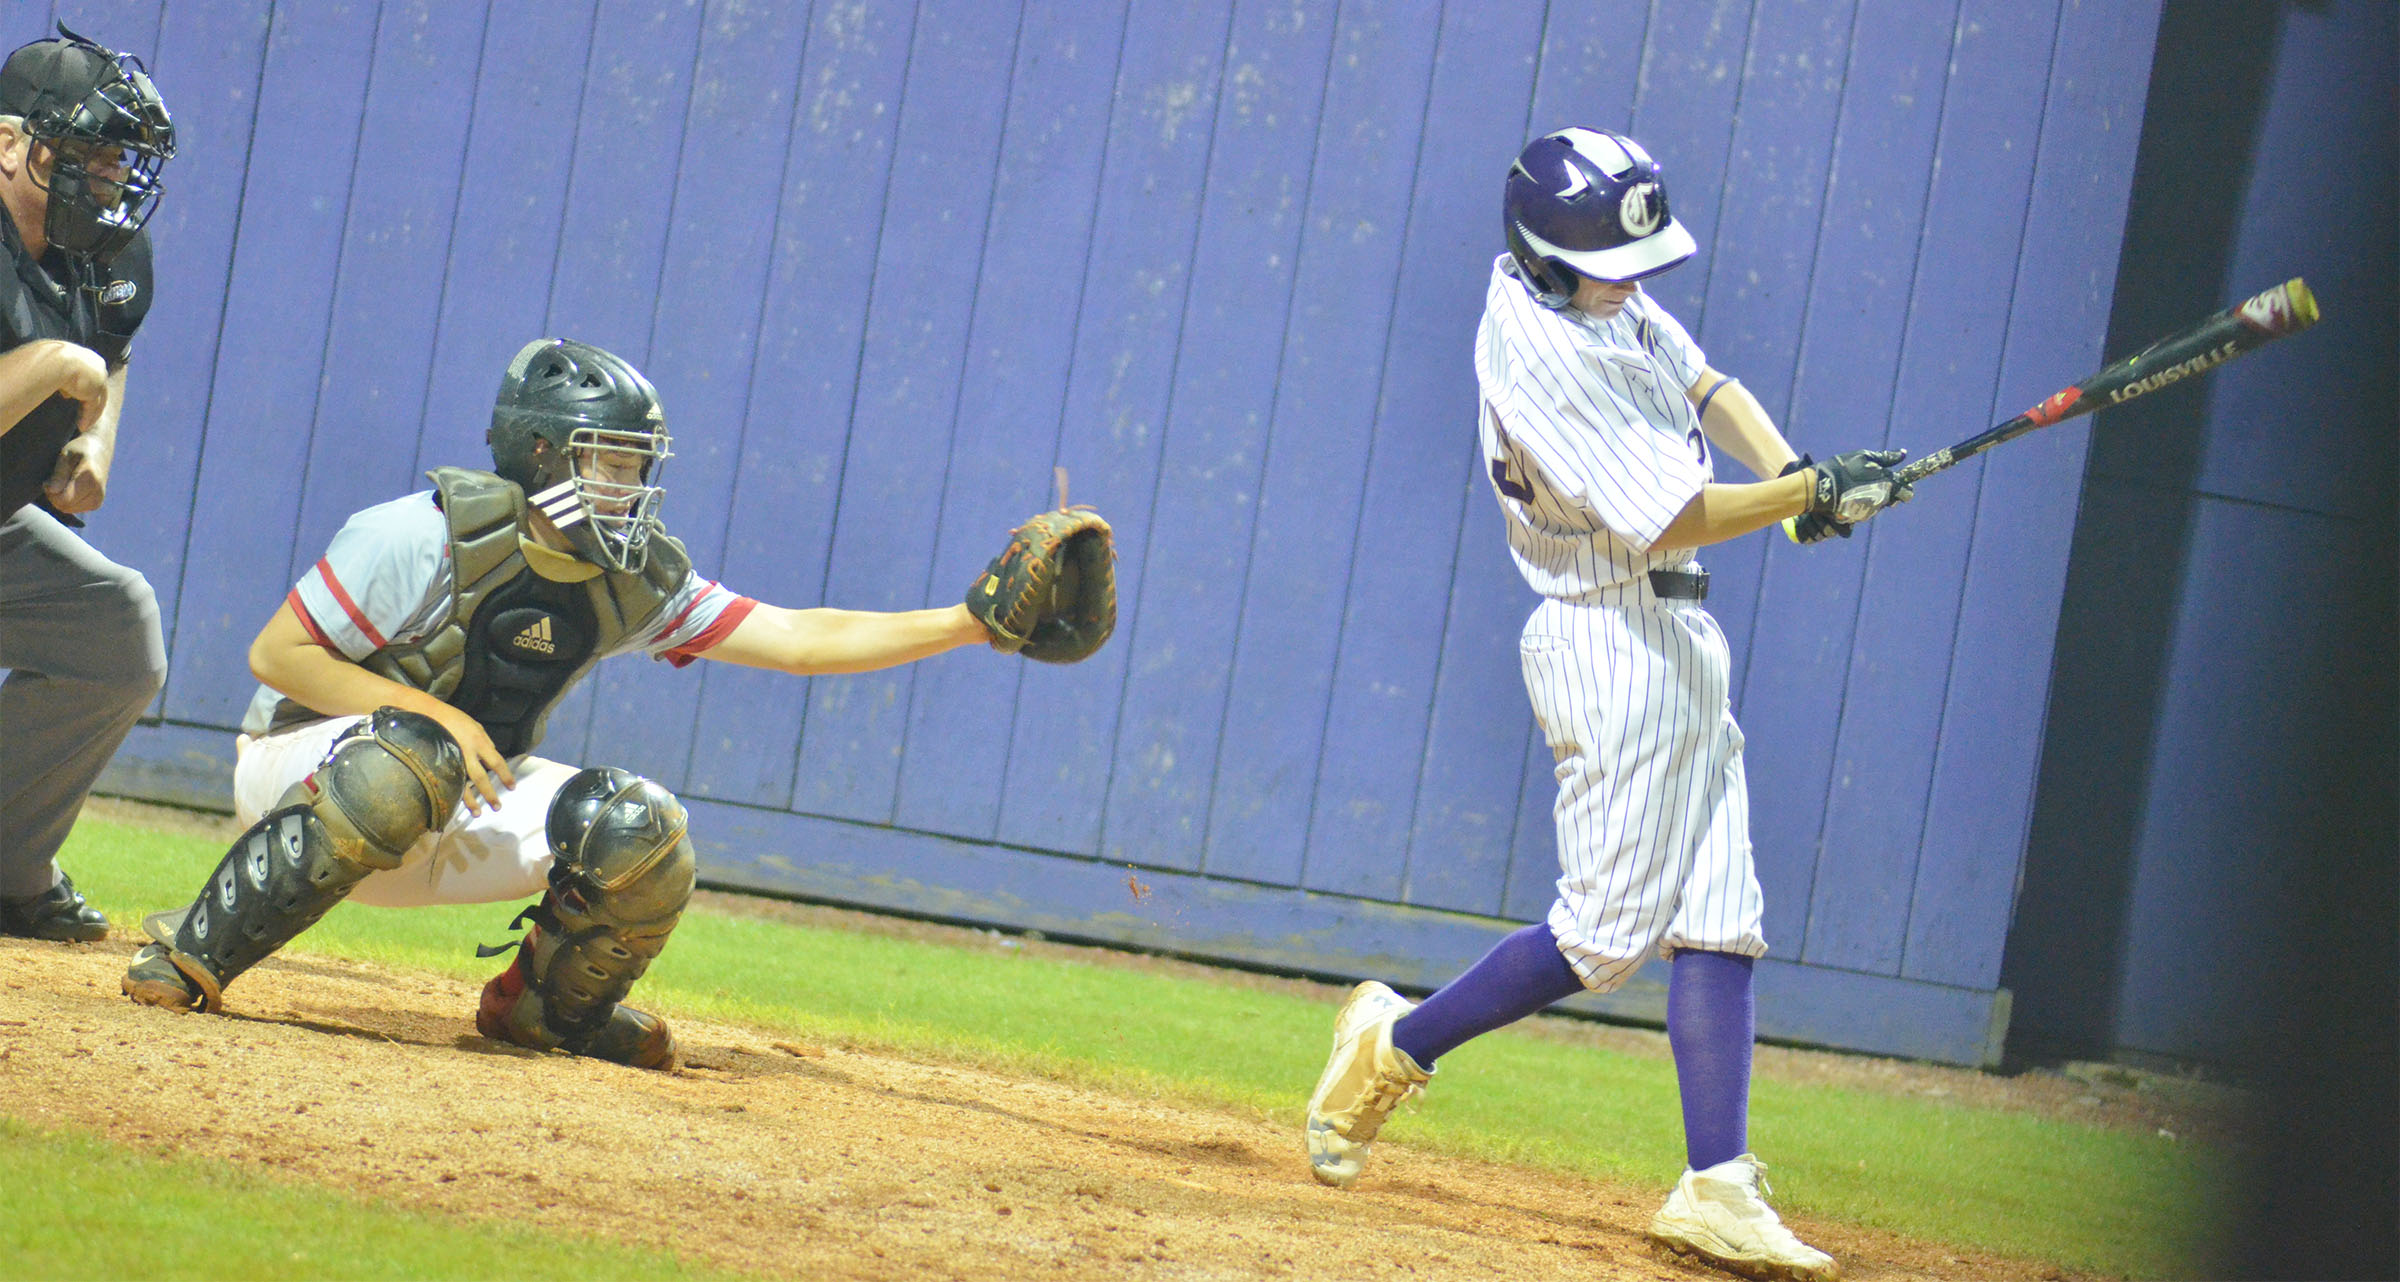 Campbellsville Middle School eighth-grader Blase Wheatley swings.